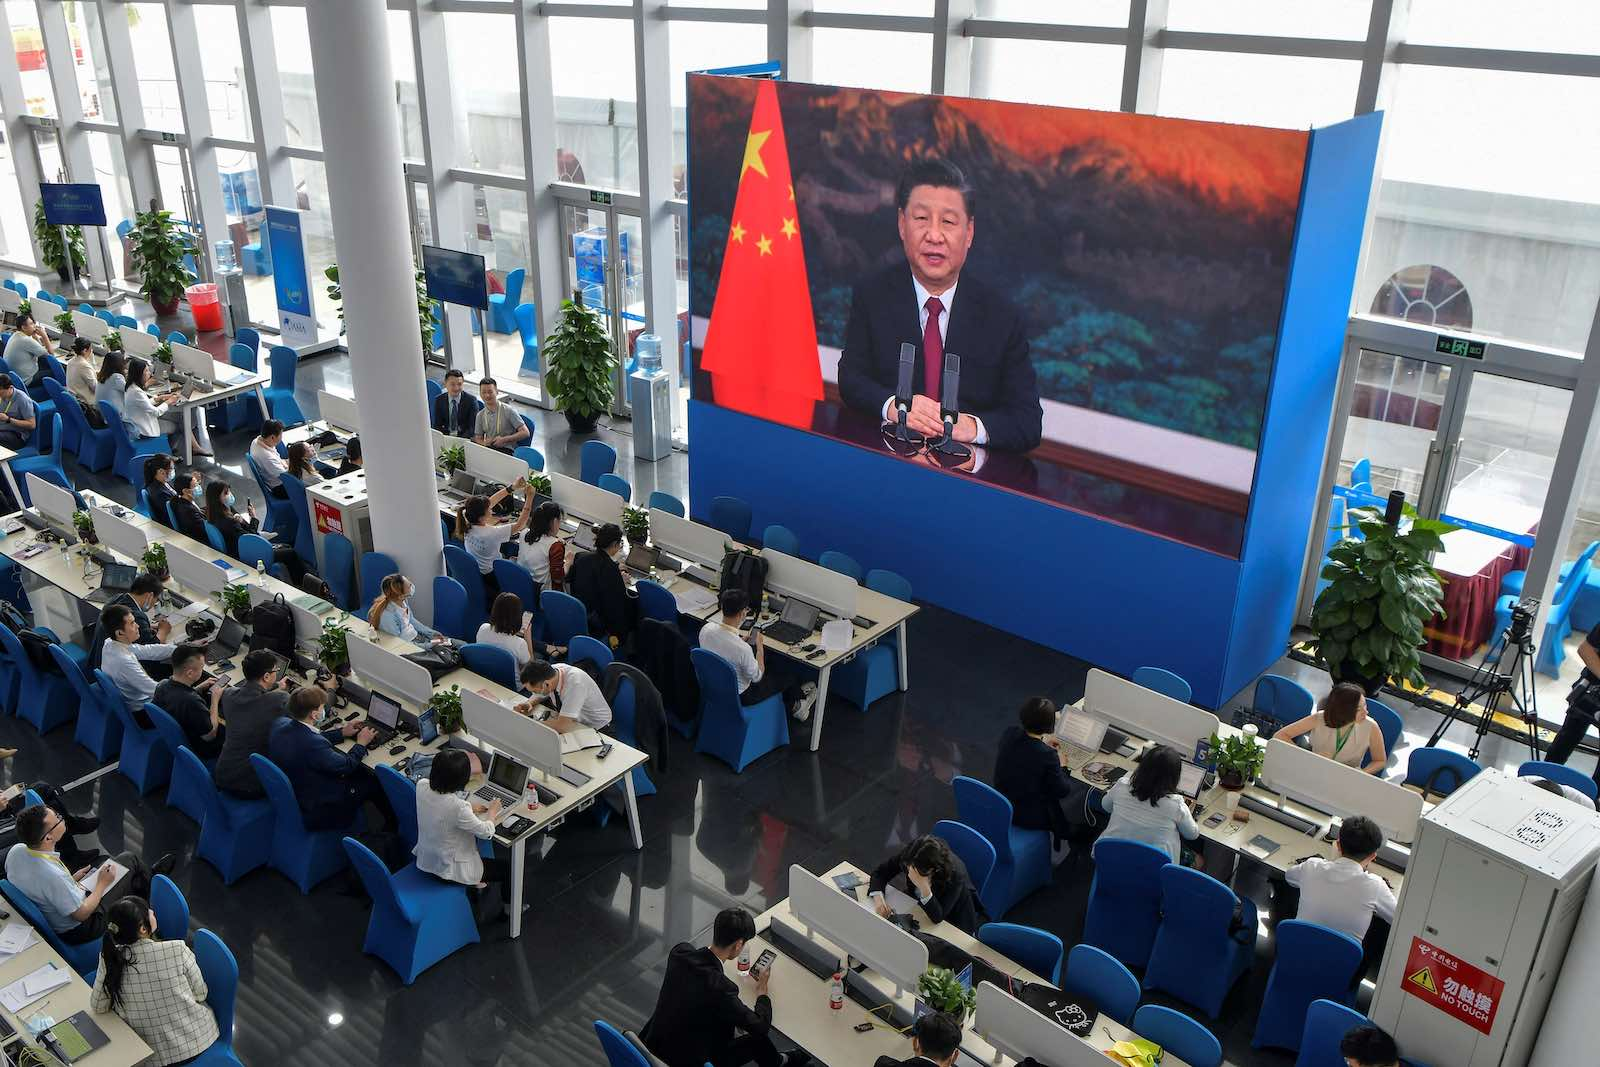 Journalists watch on screen as China's President Xi Jinping delivers a speech during the opening of the Boao Forum for Asia on 20 April (STR/AFP via Getty Images)